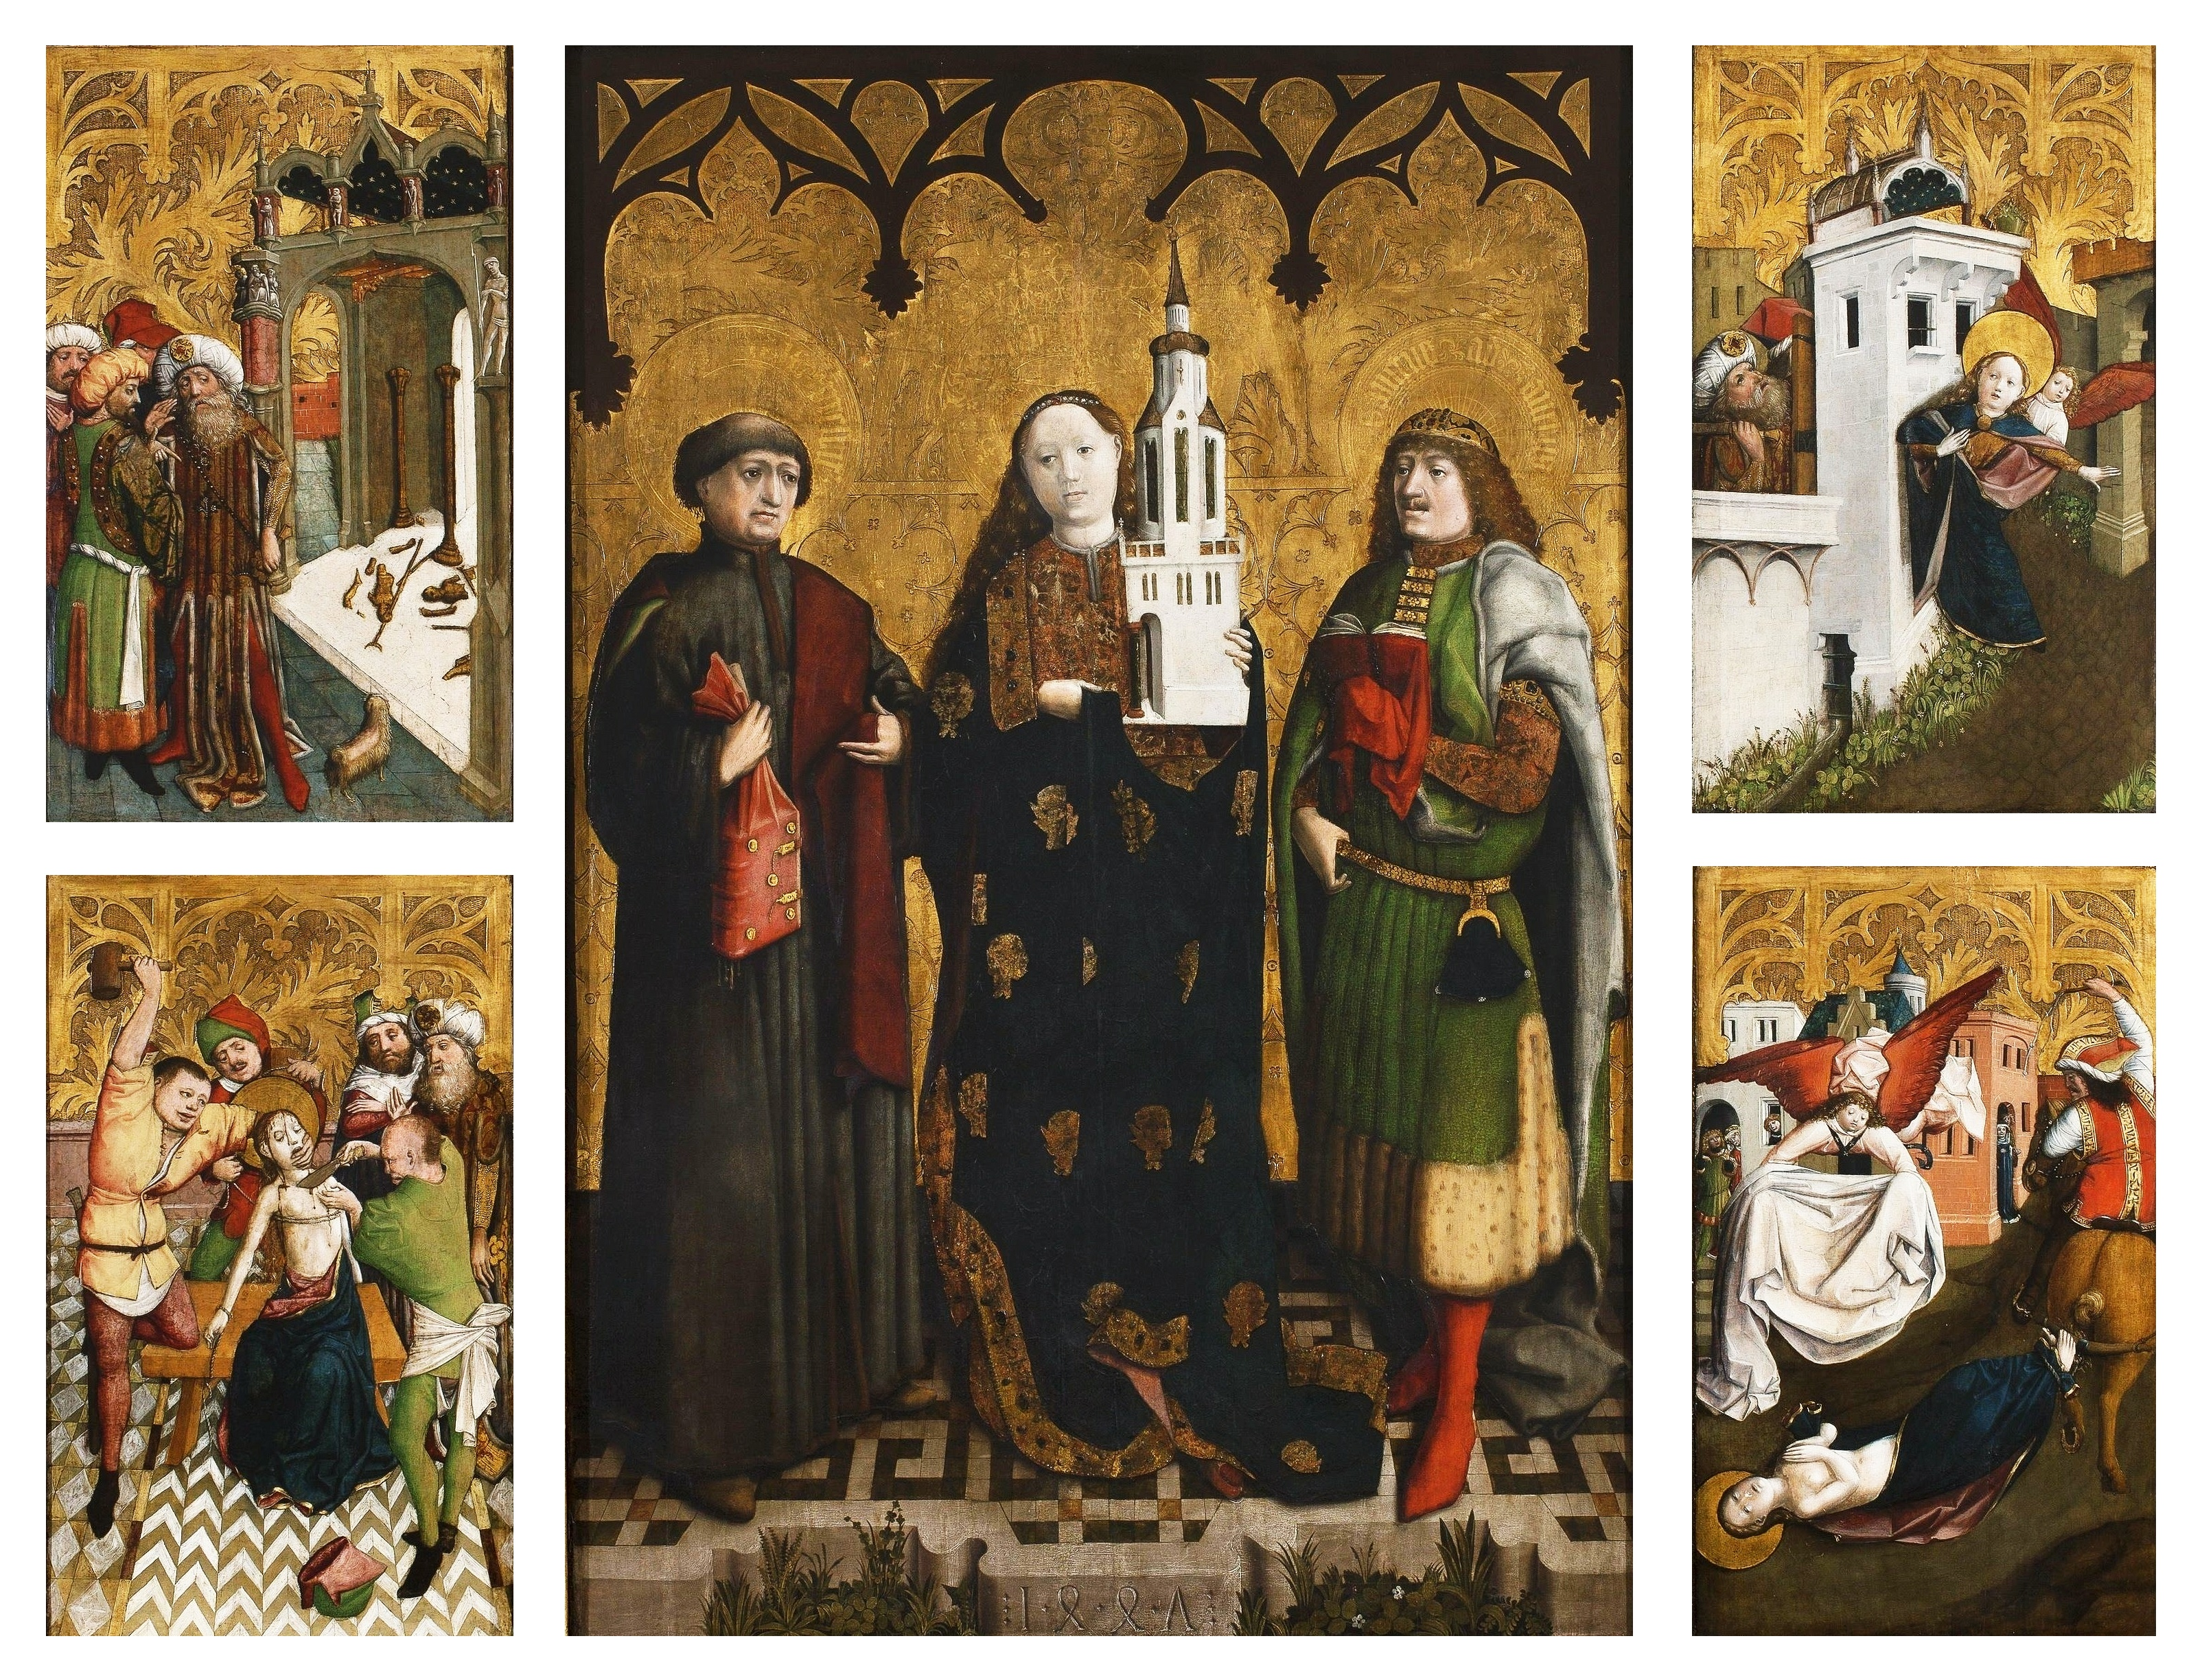 In the mid-15th century an exceptional work of art appeared in Silesia – the Altarpiece of Saint Barbara. This altarpiece adorned the main altar of St Barbara's Church in Wrocław [Vrotz-wahv].